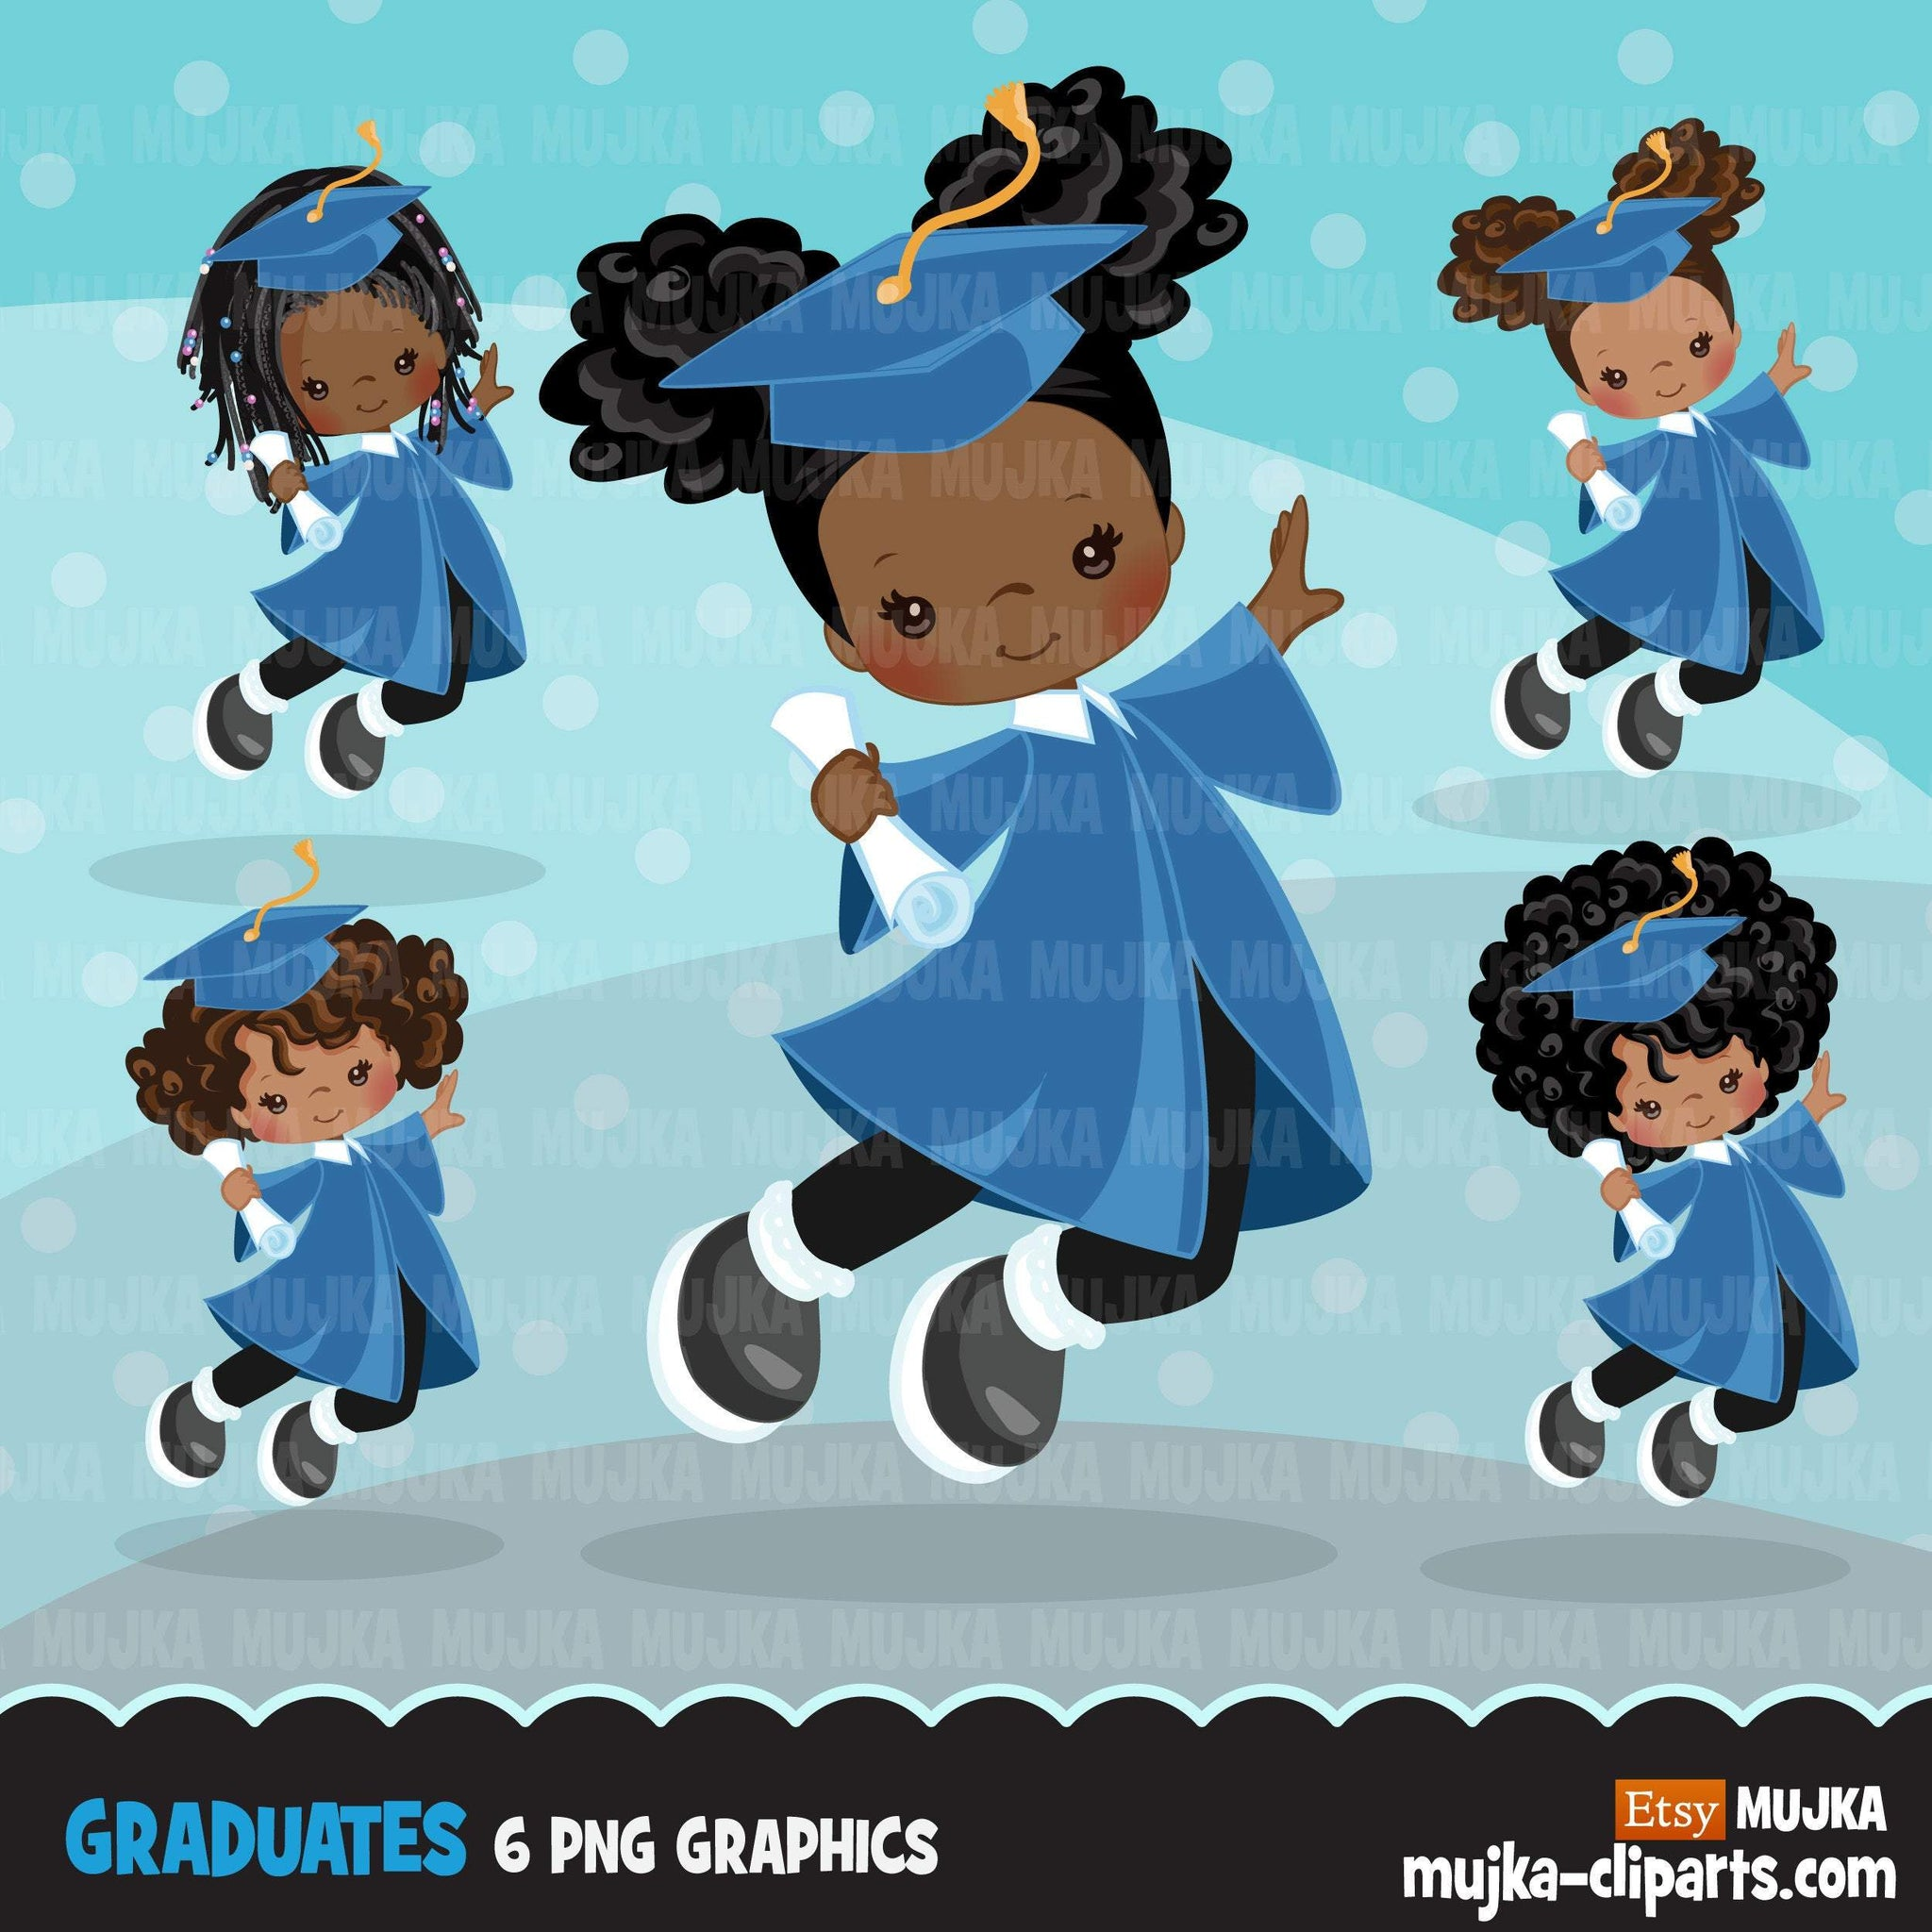 Graduation Clipart, graduate black girls with blue gown, cape and scroll jumping, school, student class of graphics, PNG clip art